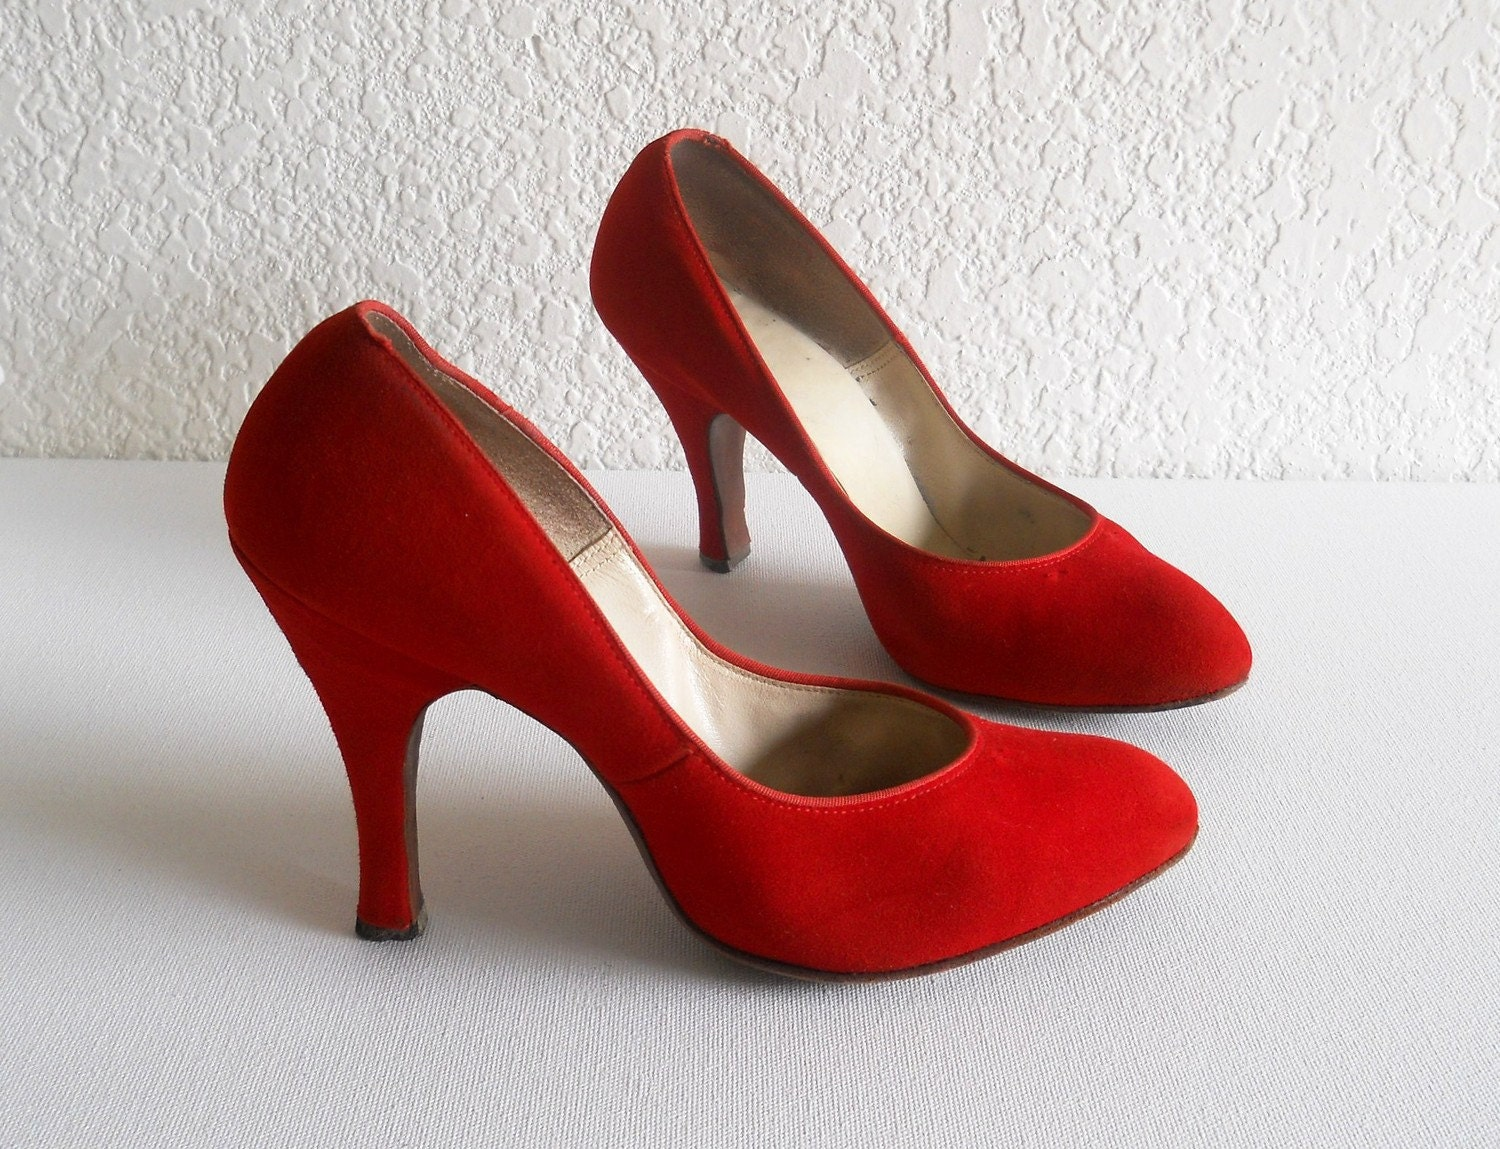 Red Vintage Heels - Is Heel